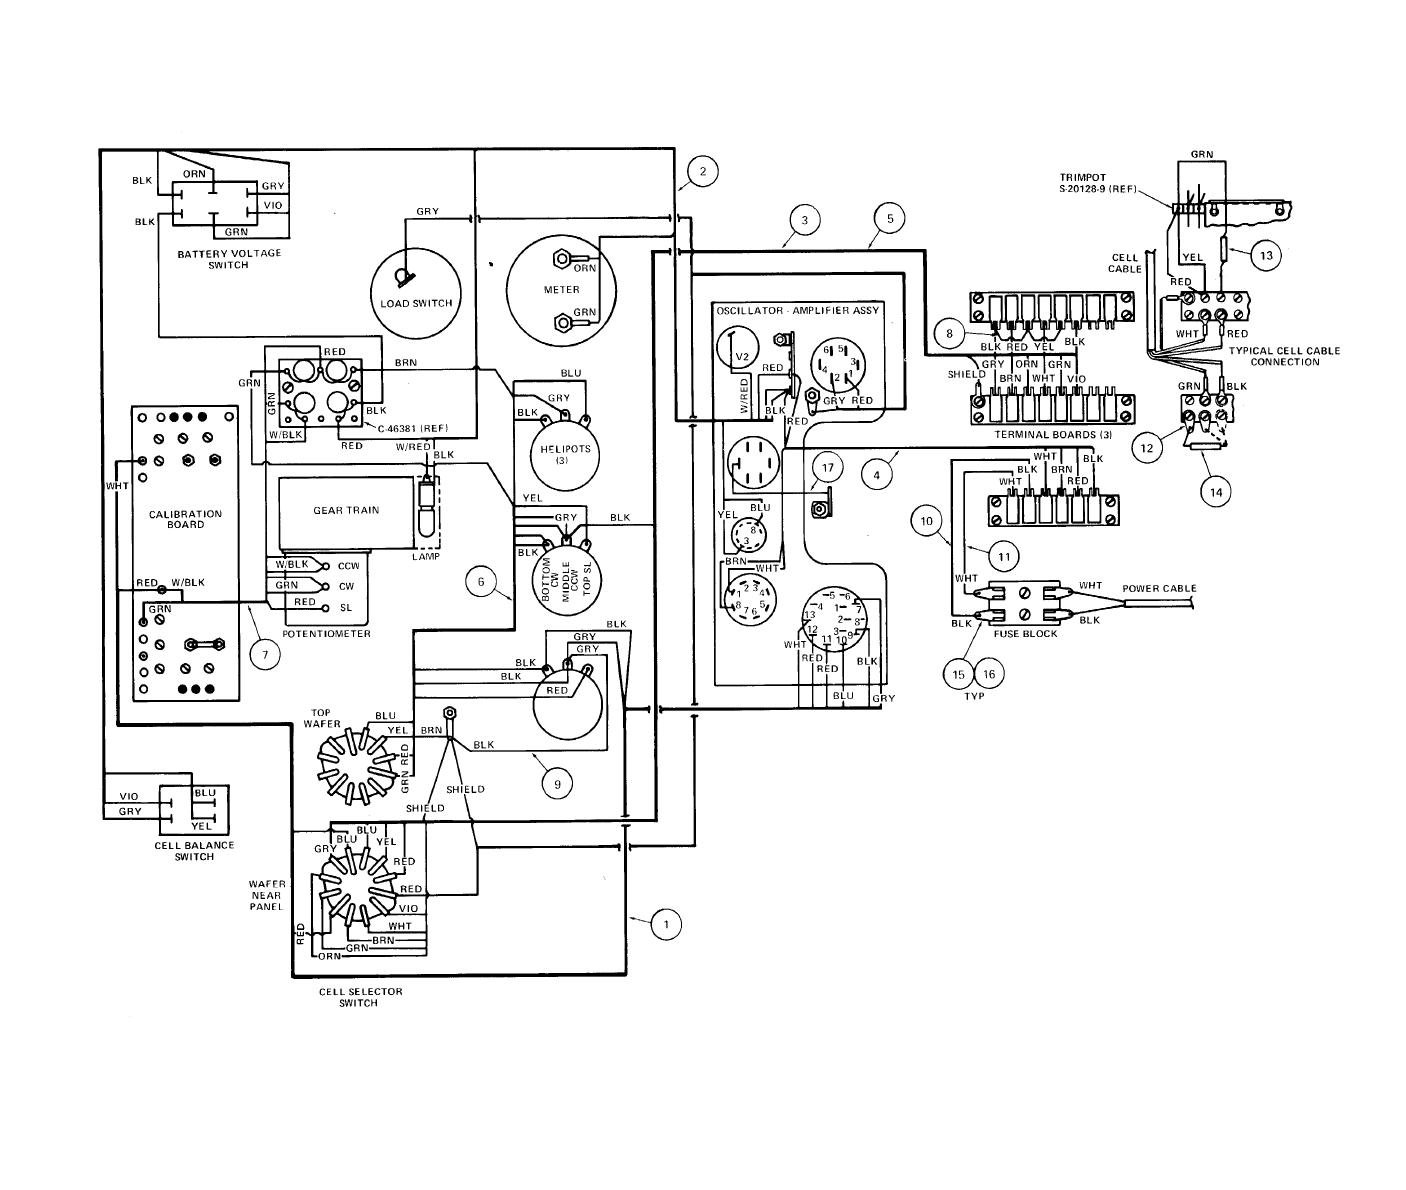 Charvel Model 4 Wiring Diagram 30 Images Roper Dryer Red4440vq1